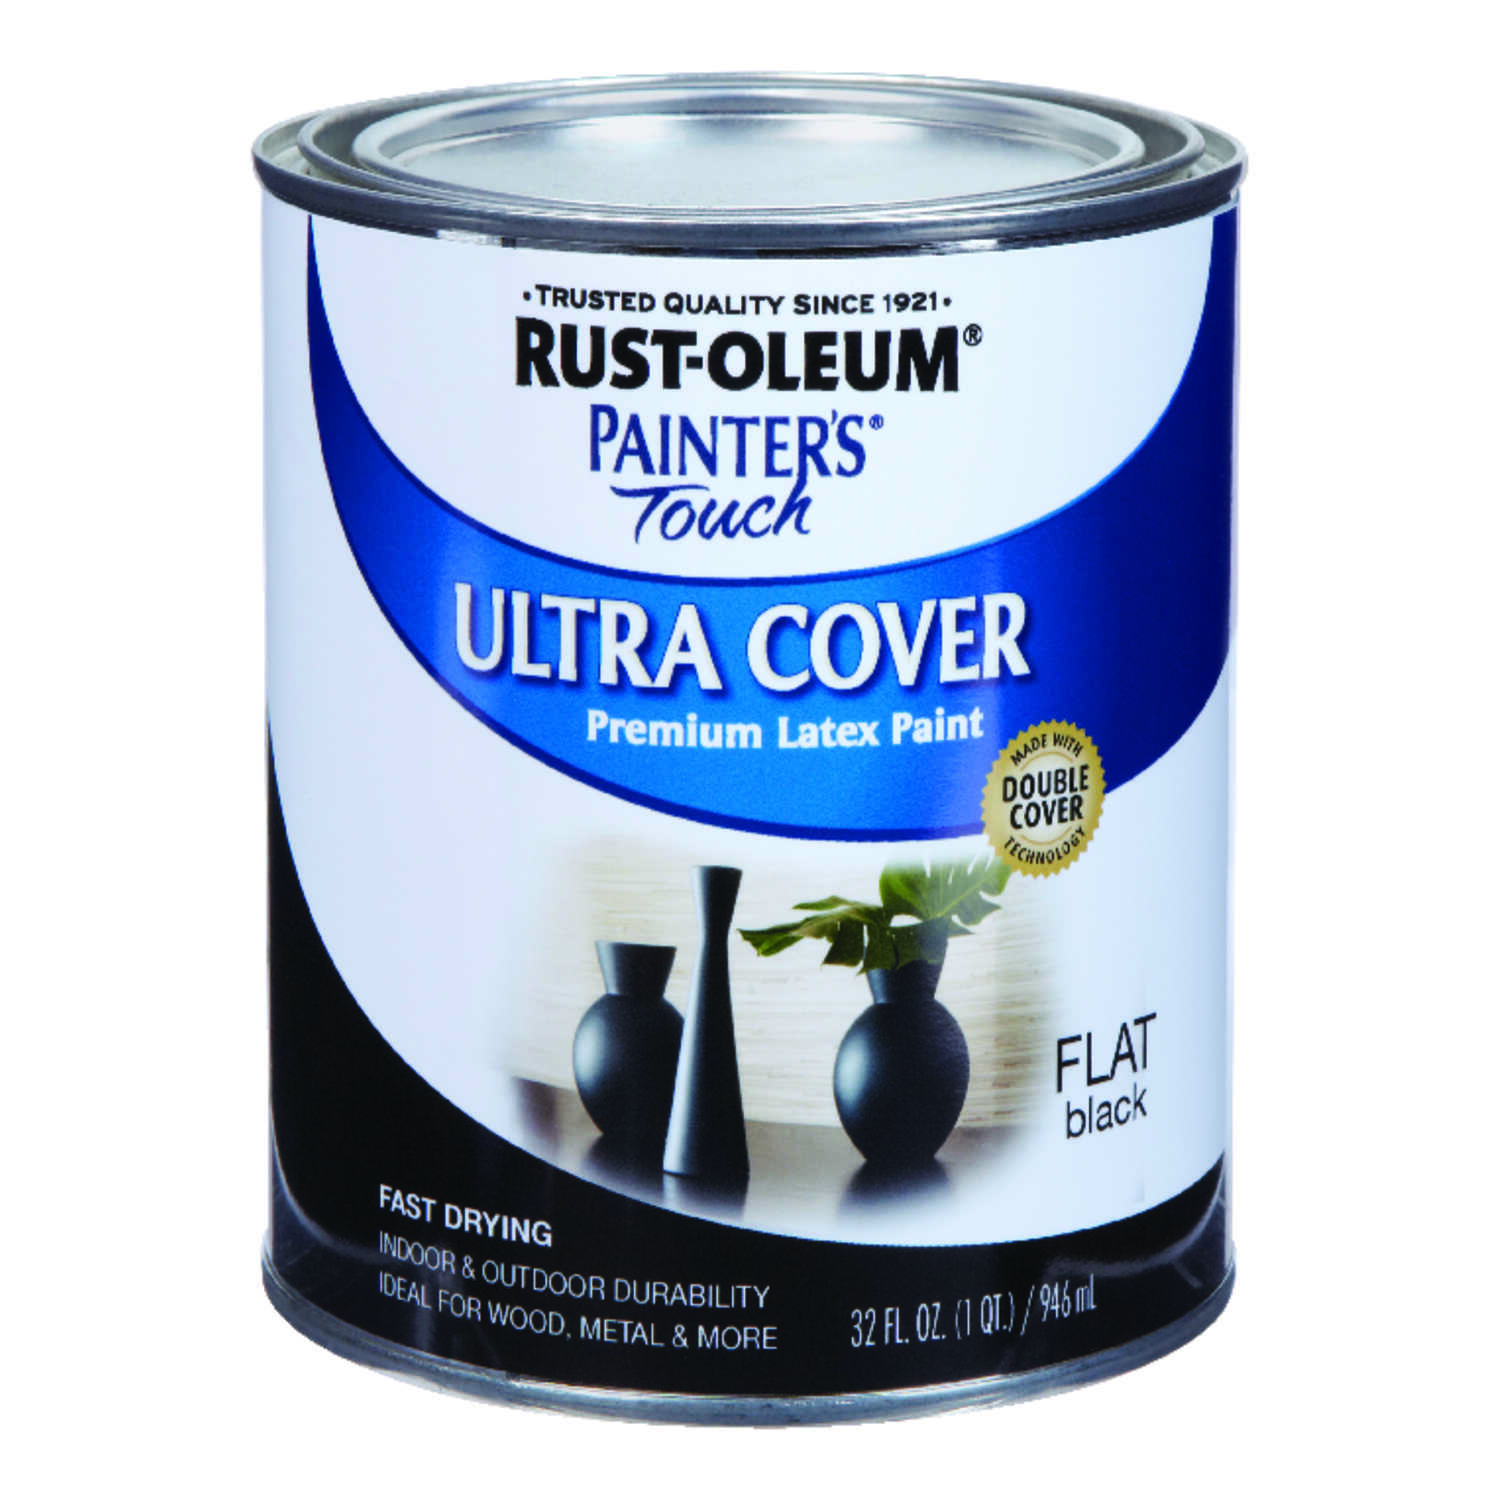 Rust-Oleum  Painters Touch Ultra Cover  Indoor and Outdoor  Black  Latex  1 qt. Paint  Flat